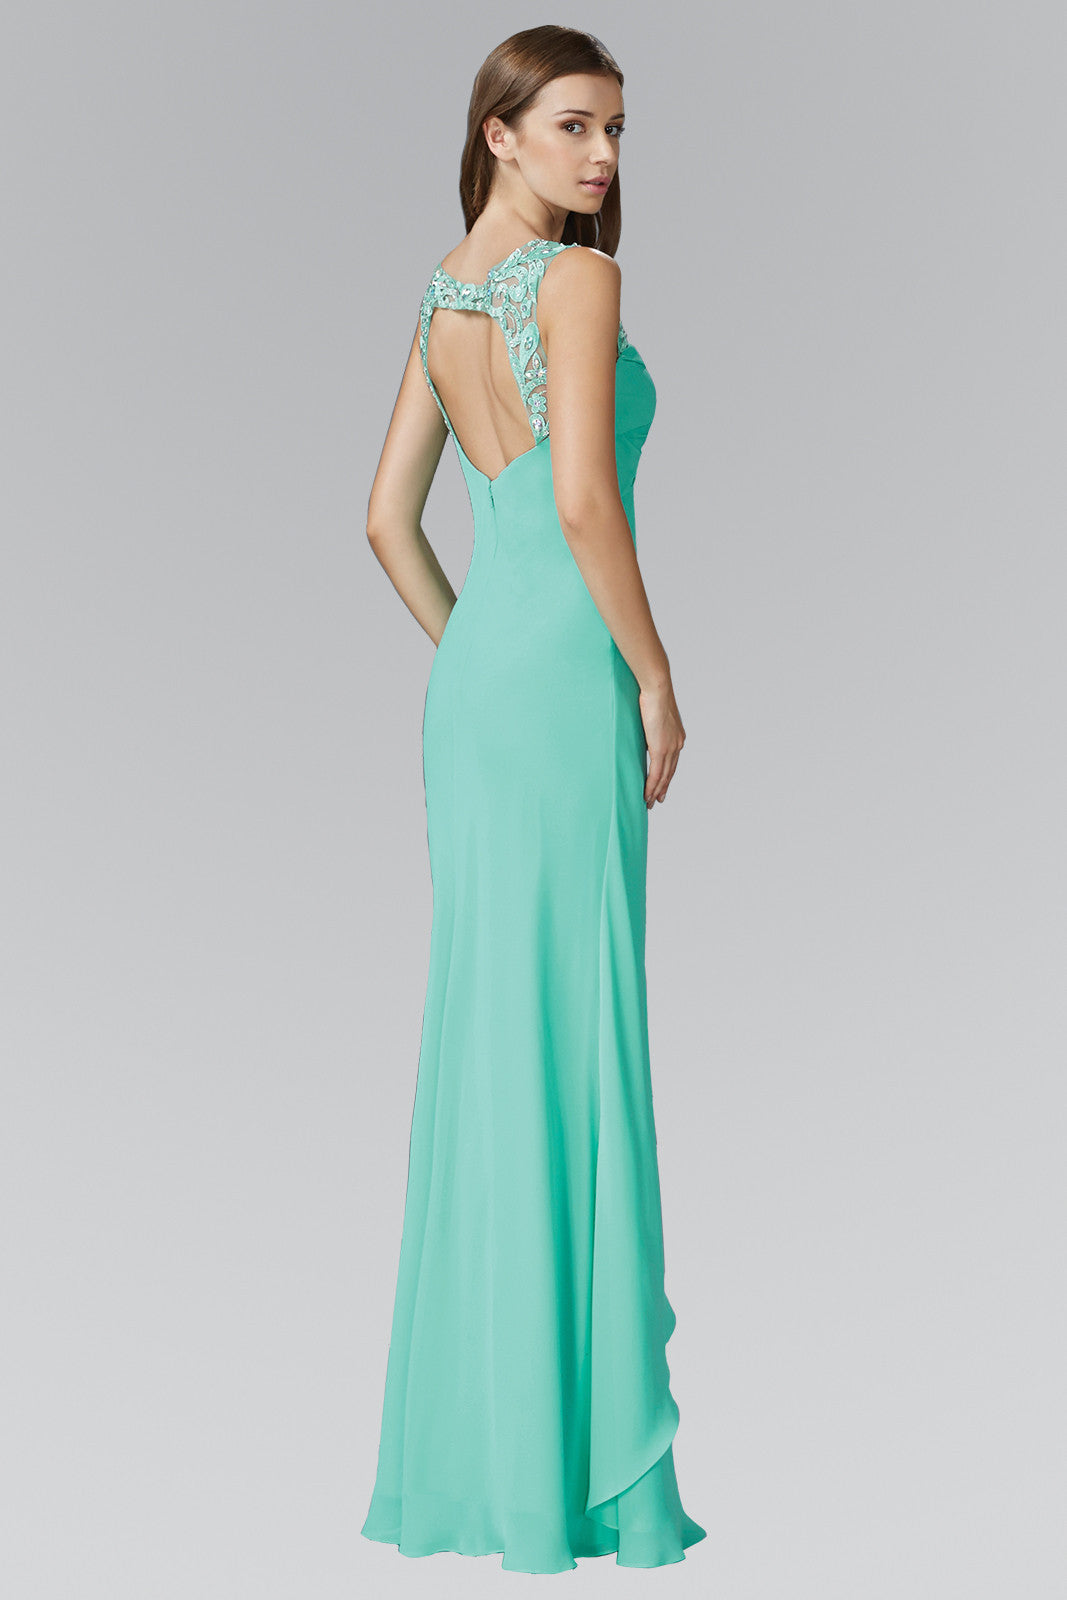 Empire waist long bridesmaid dress GL2061